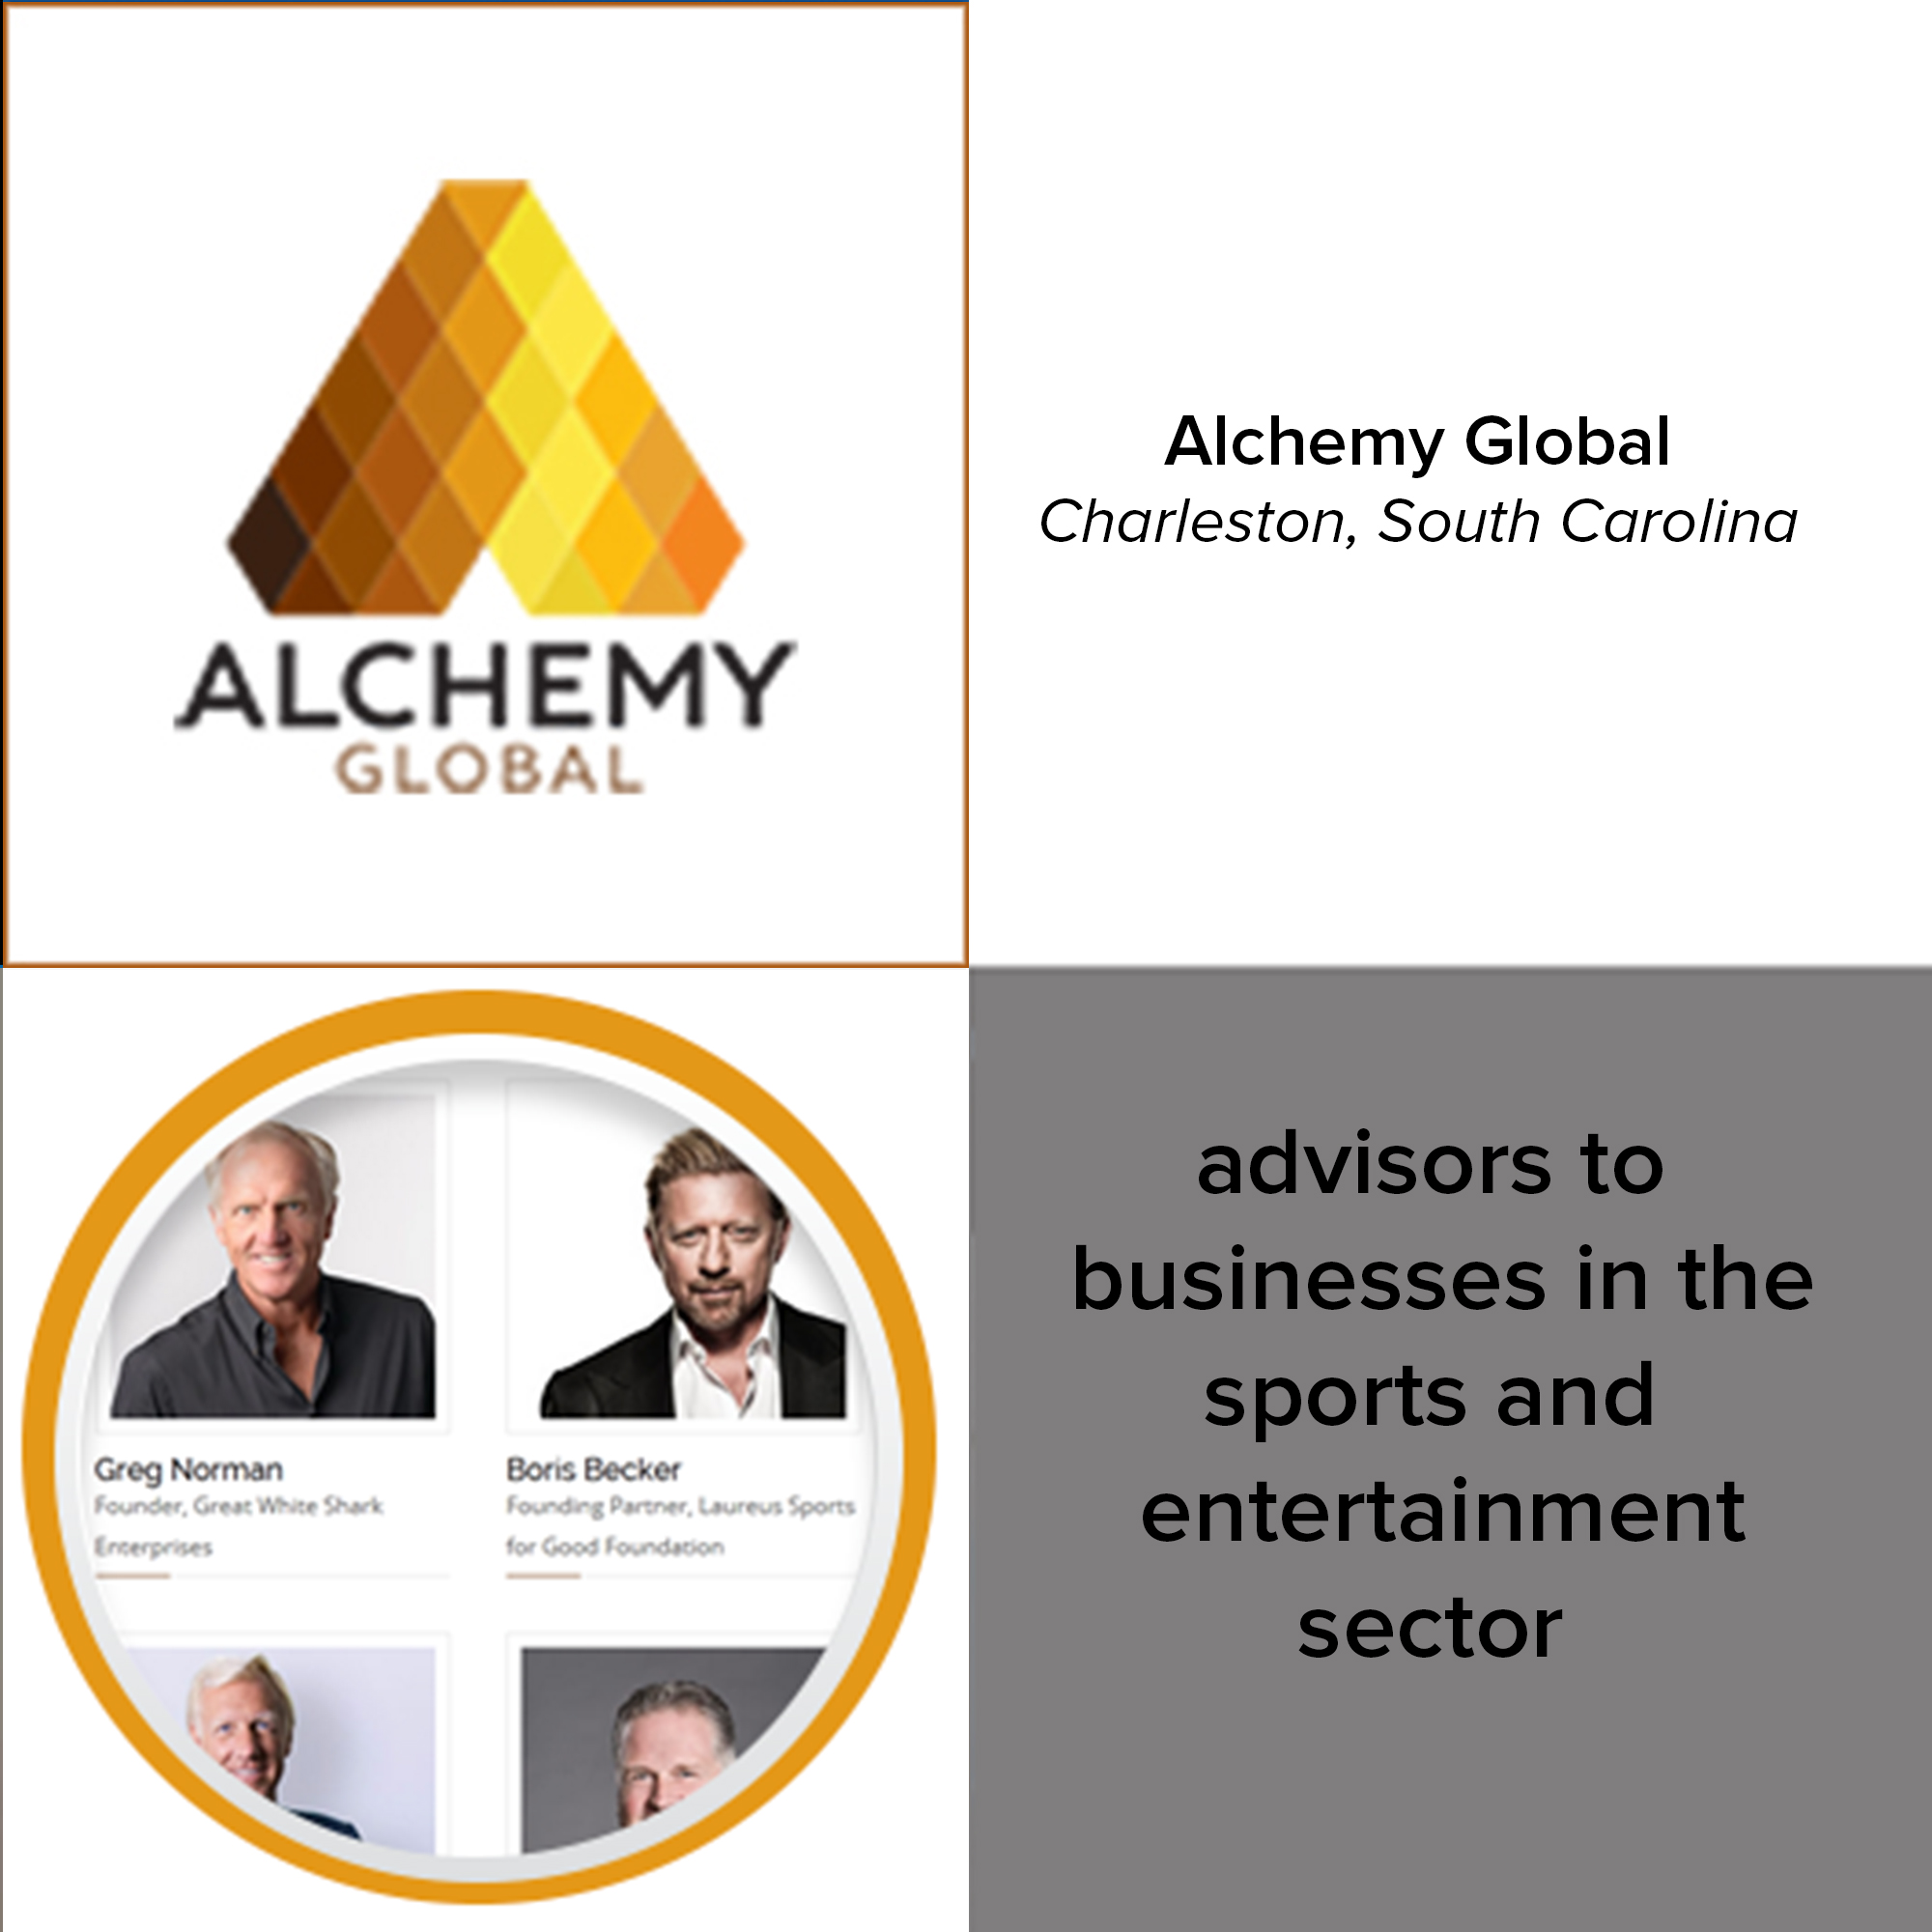 alchemy_2015website.jpg